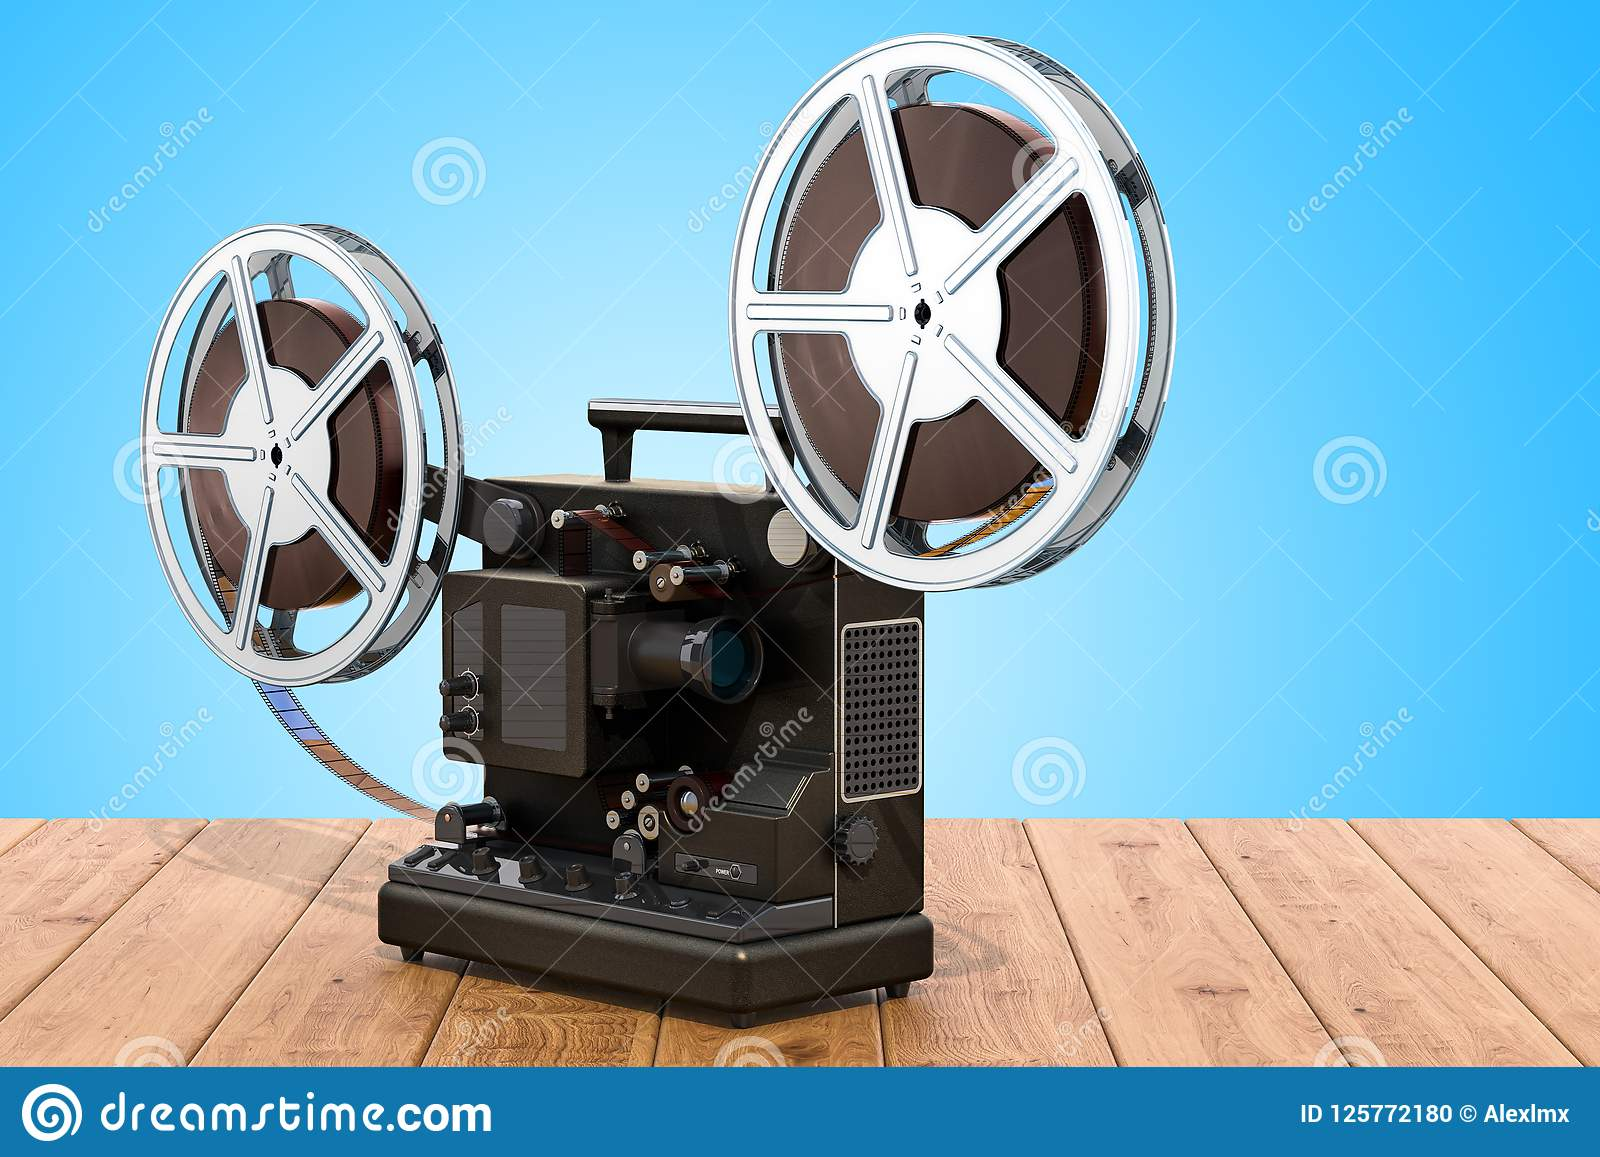 Retro cinema projector on the wooden table. 3D rendering